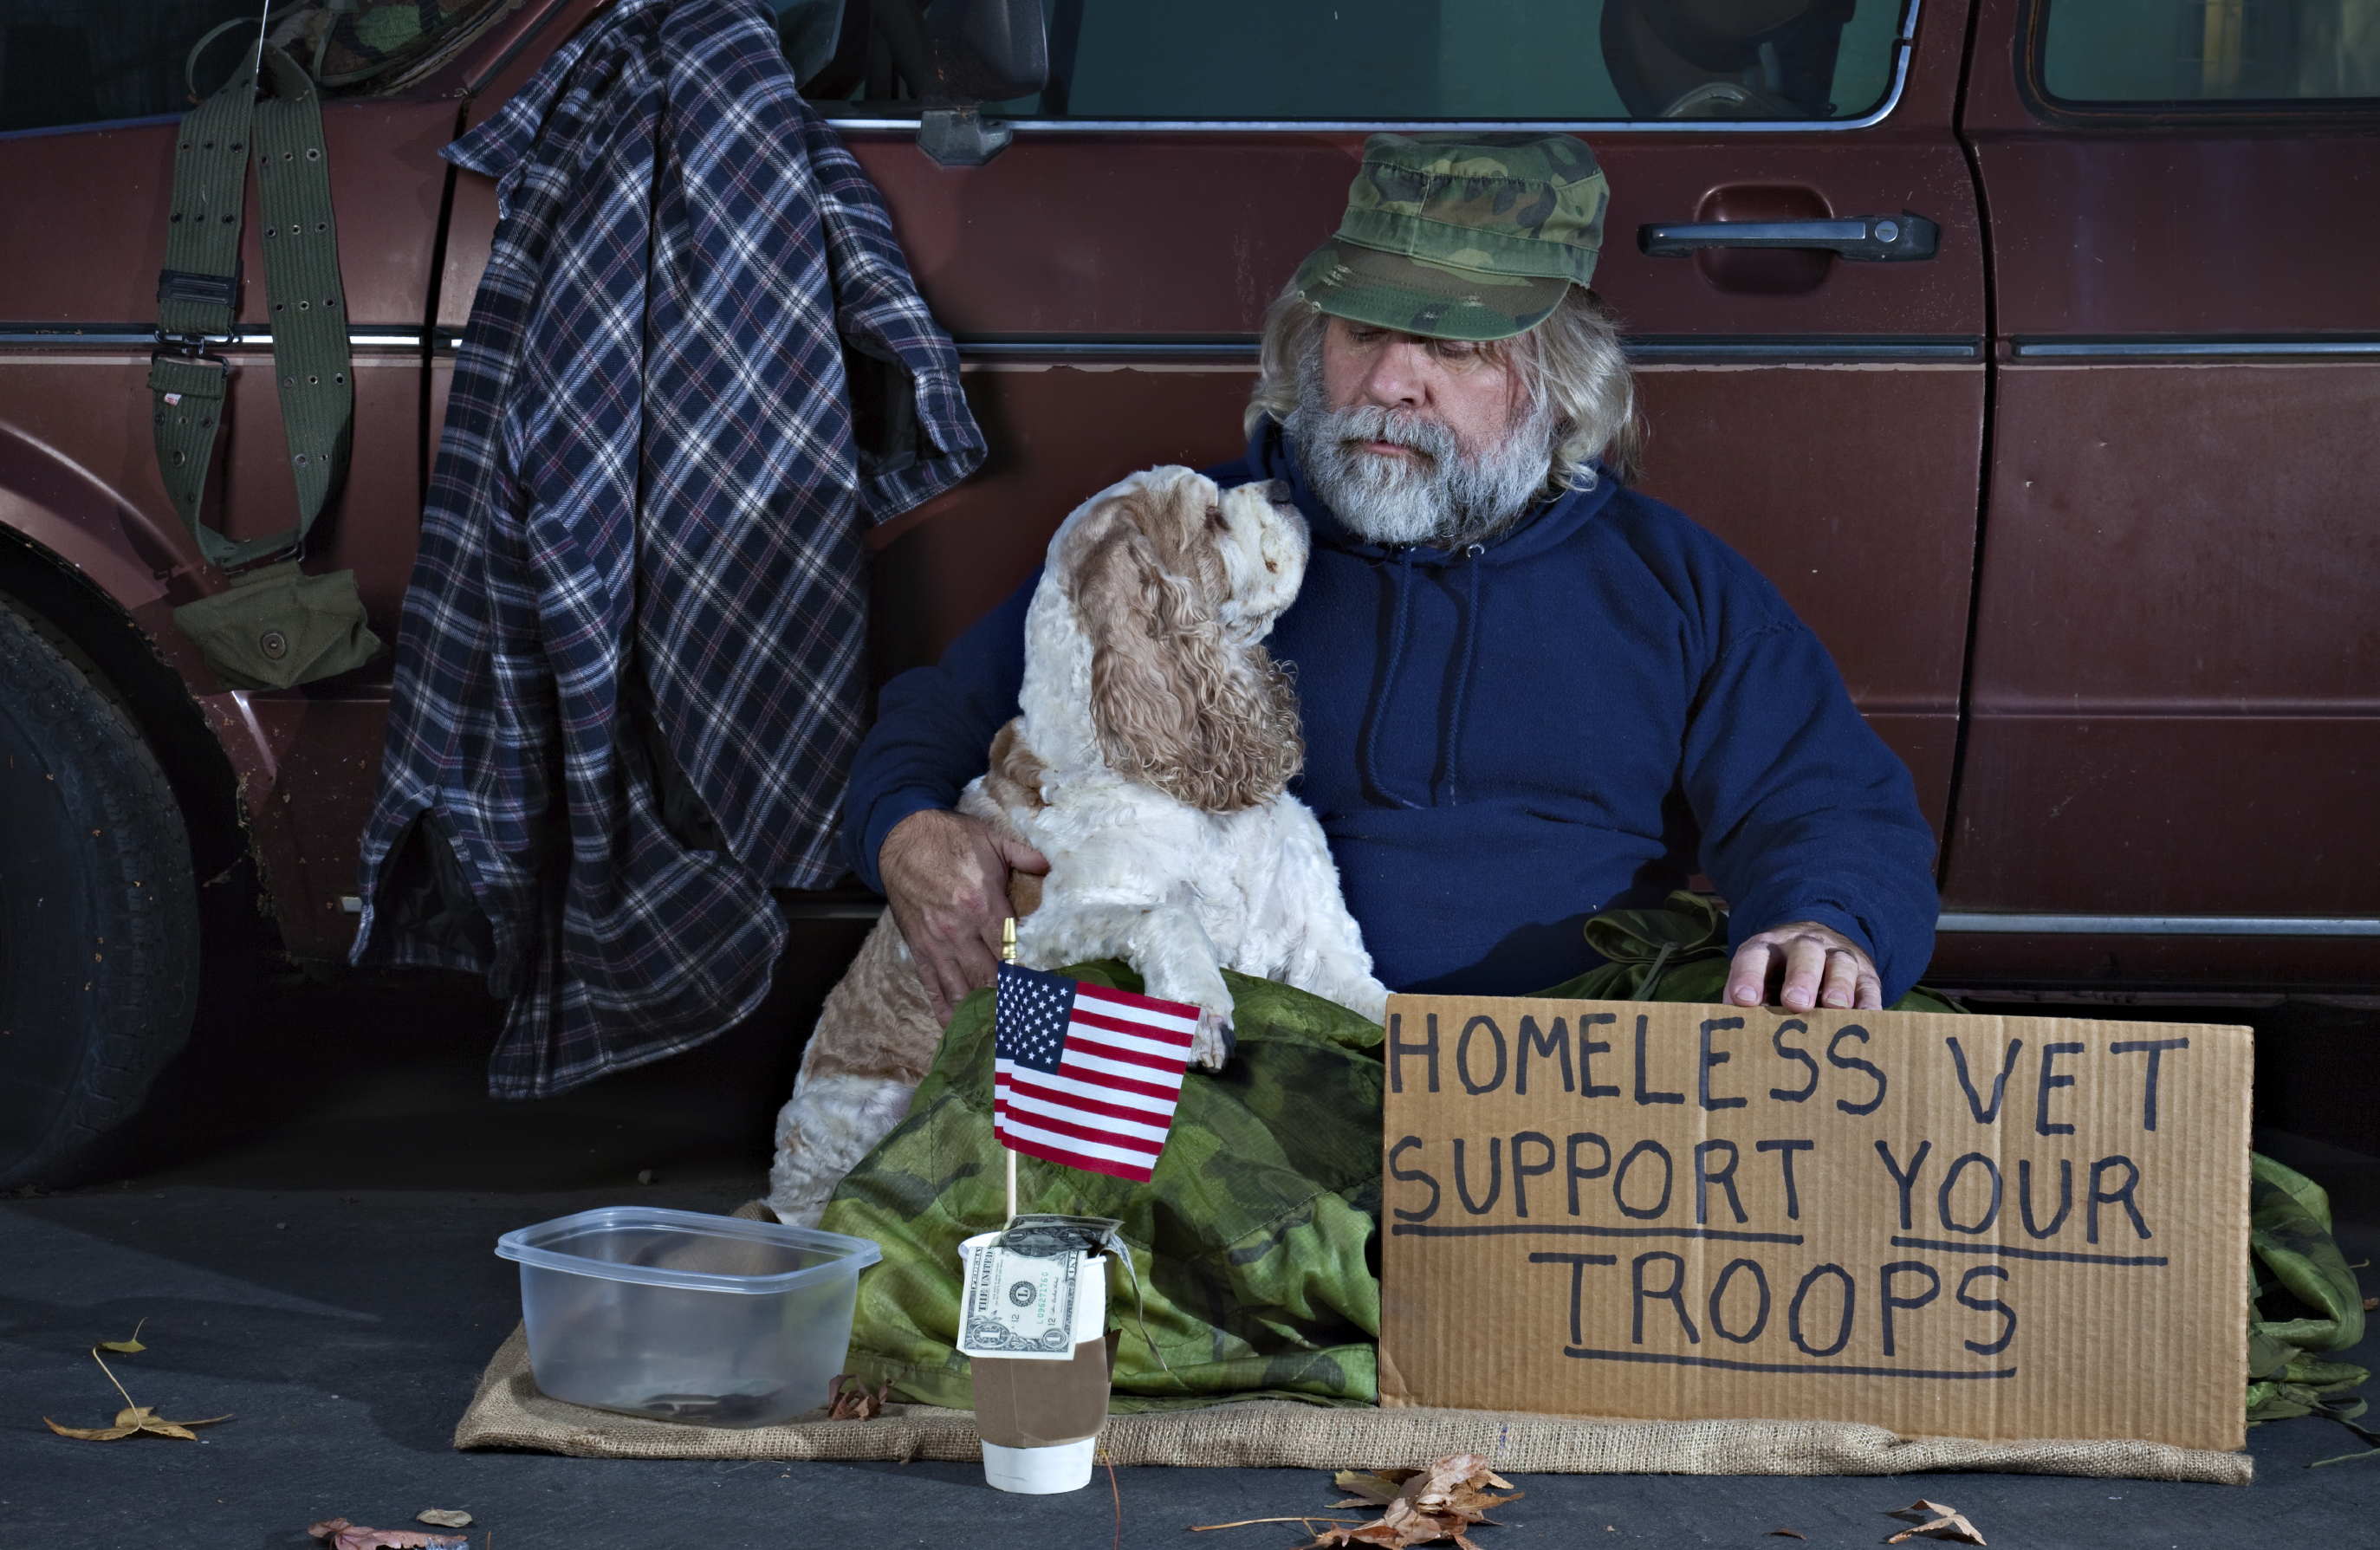 the increasing problems on homeless people in the united states Global homelessness statistics  the number of people in shelters for homeless people increased by 25% between 2005 and 2012  united states of ameria.